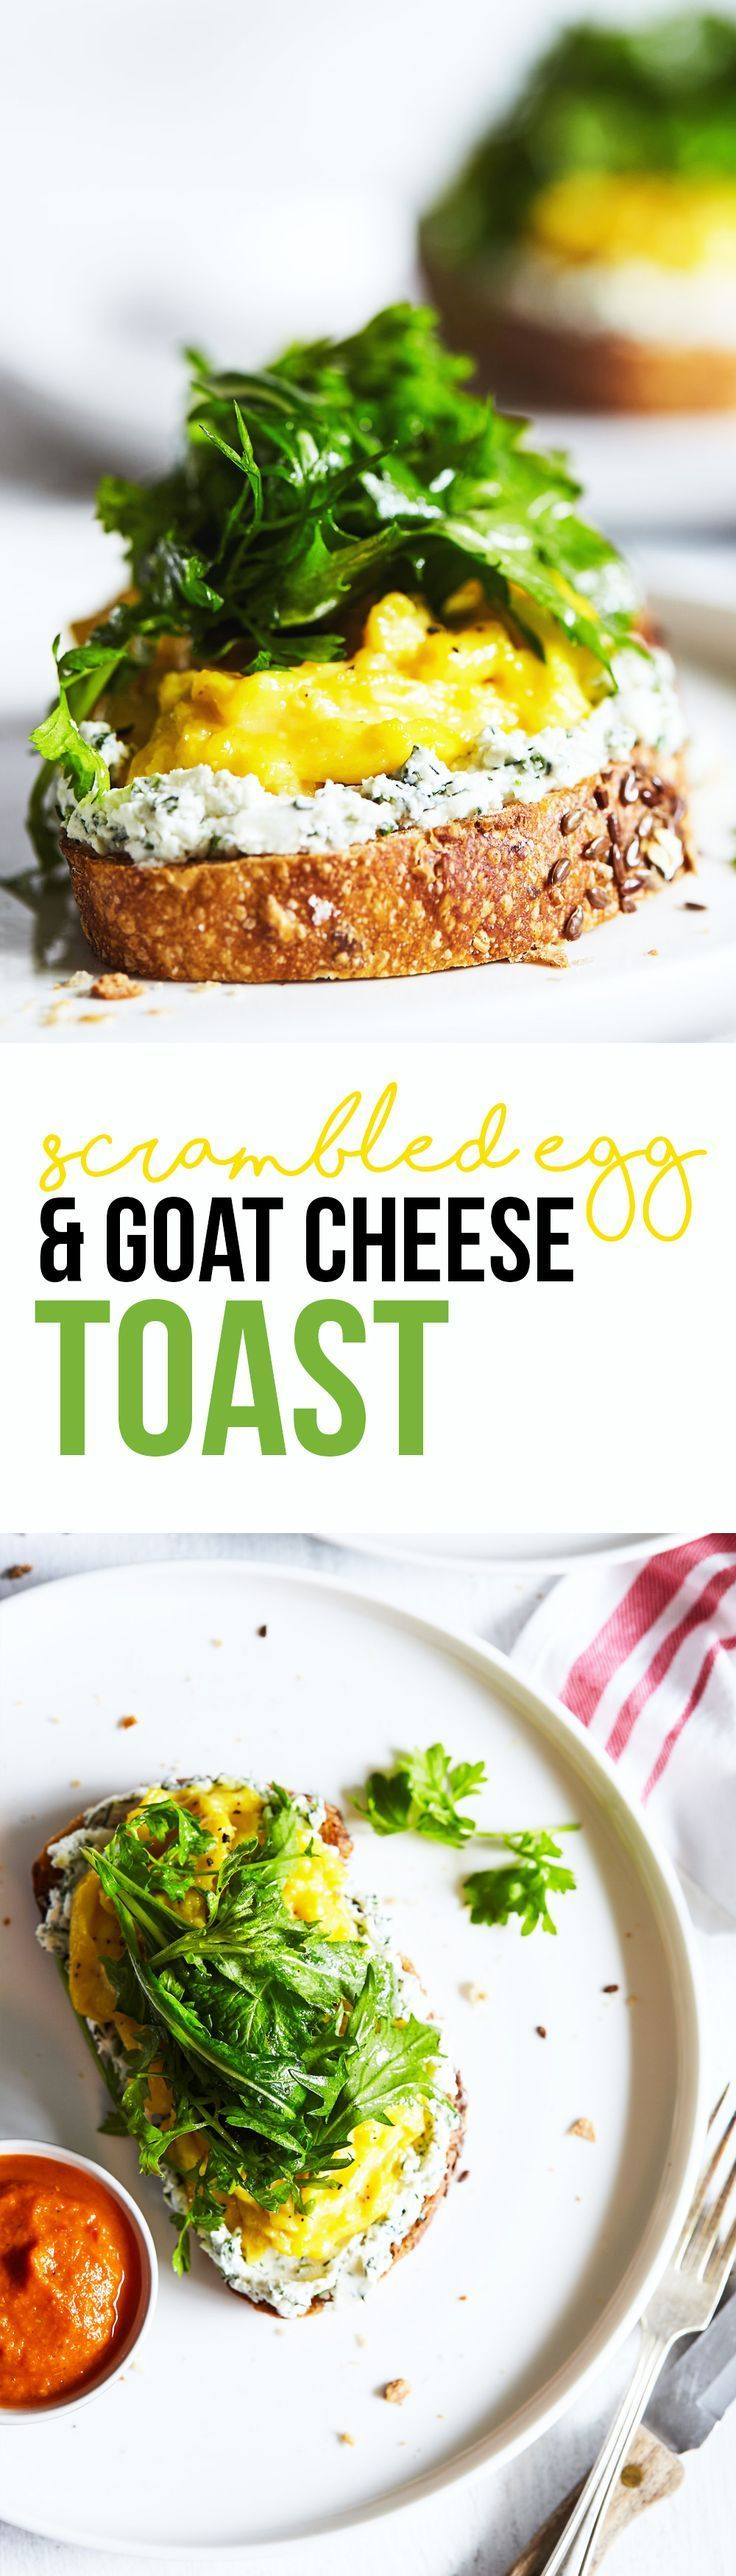 Soft, custardy scrambled eggs set atop toasted bread and an addictive herbed goat cheese. A simple, yet stunning dish that's super delicious! Gluten Free option.